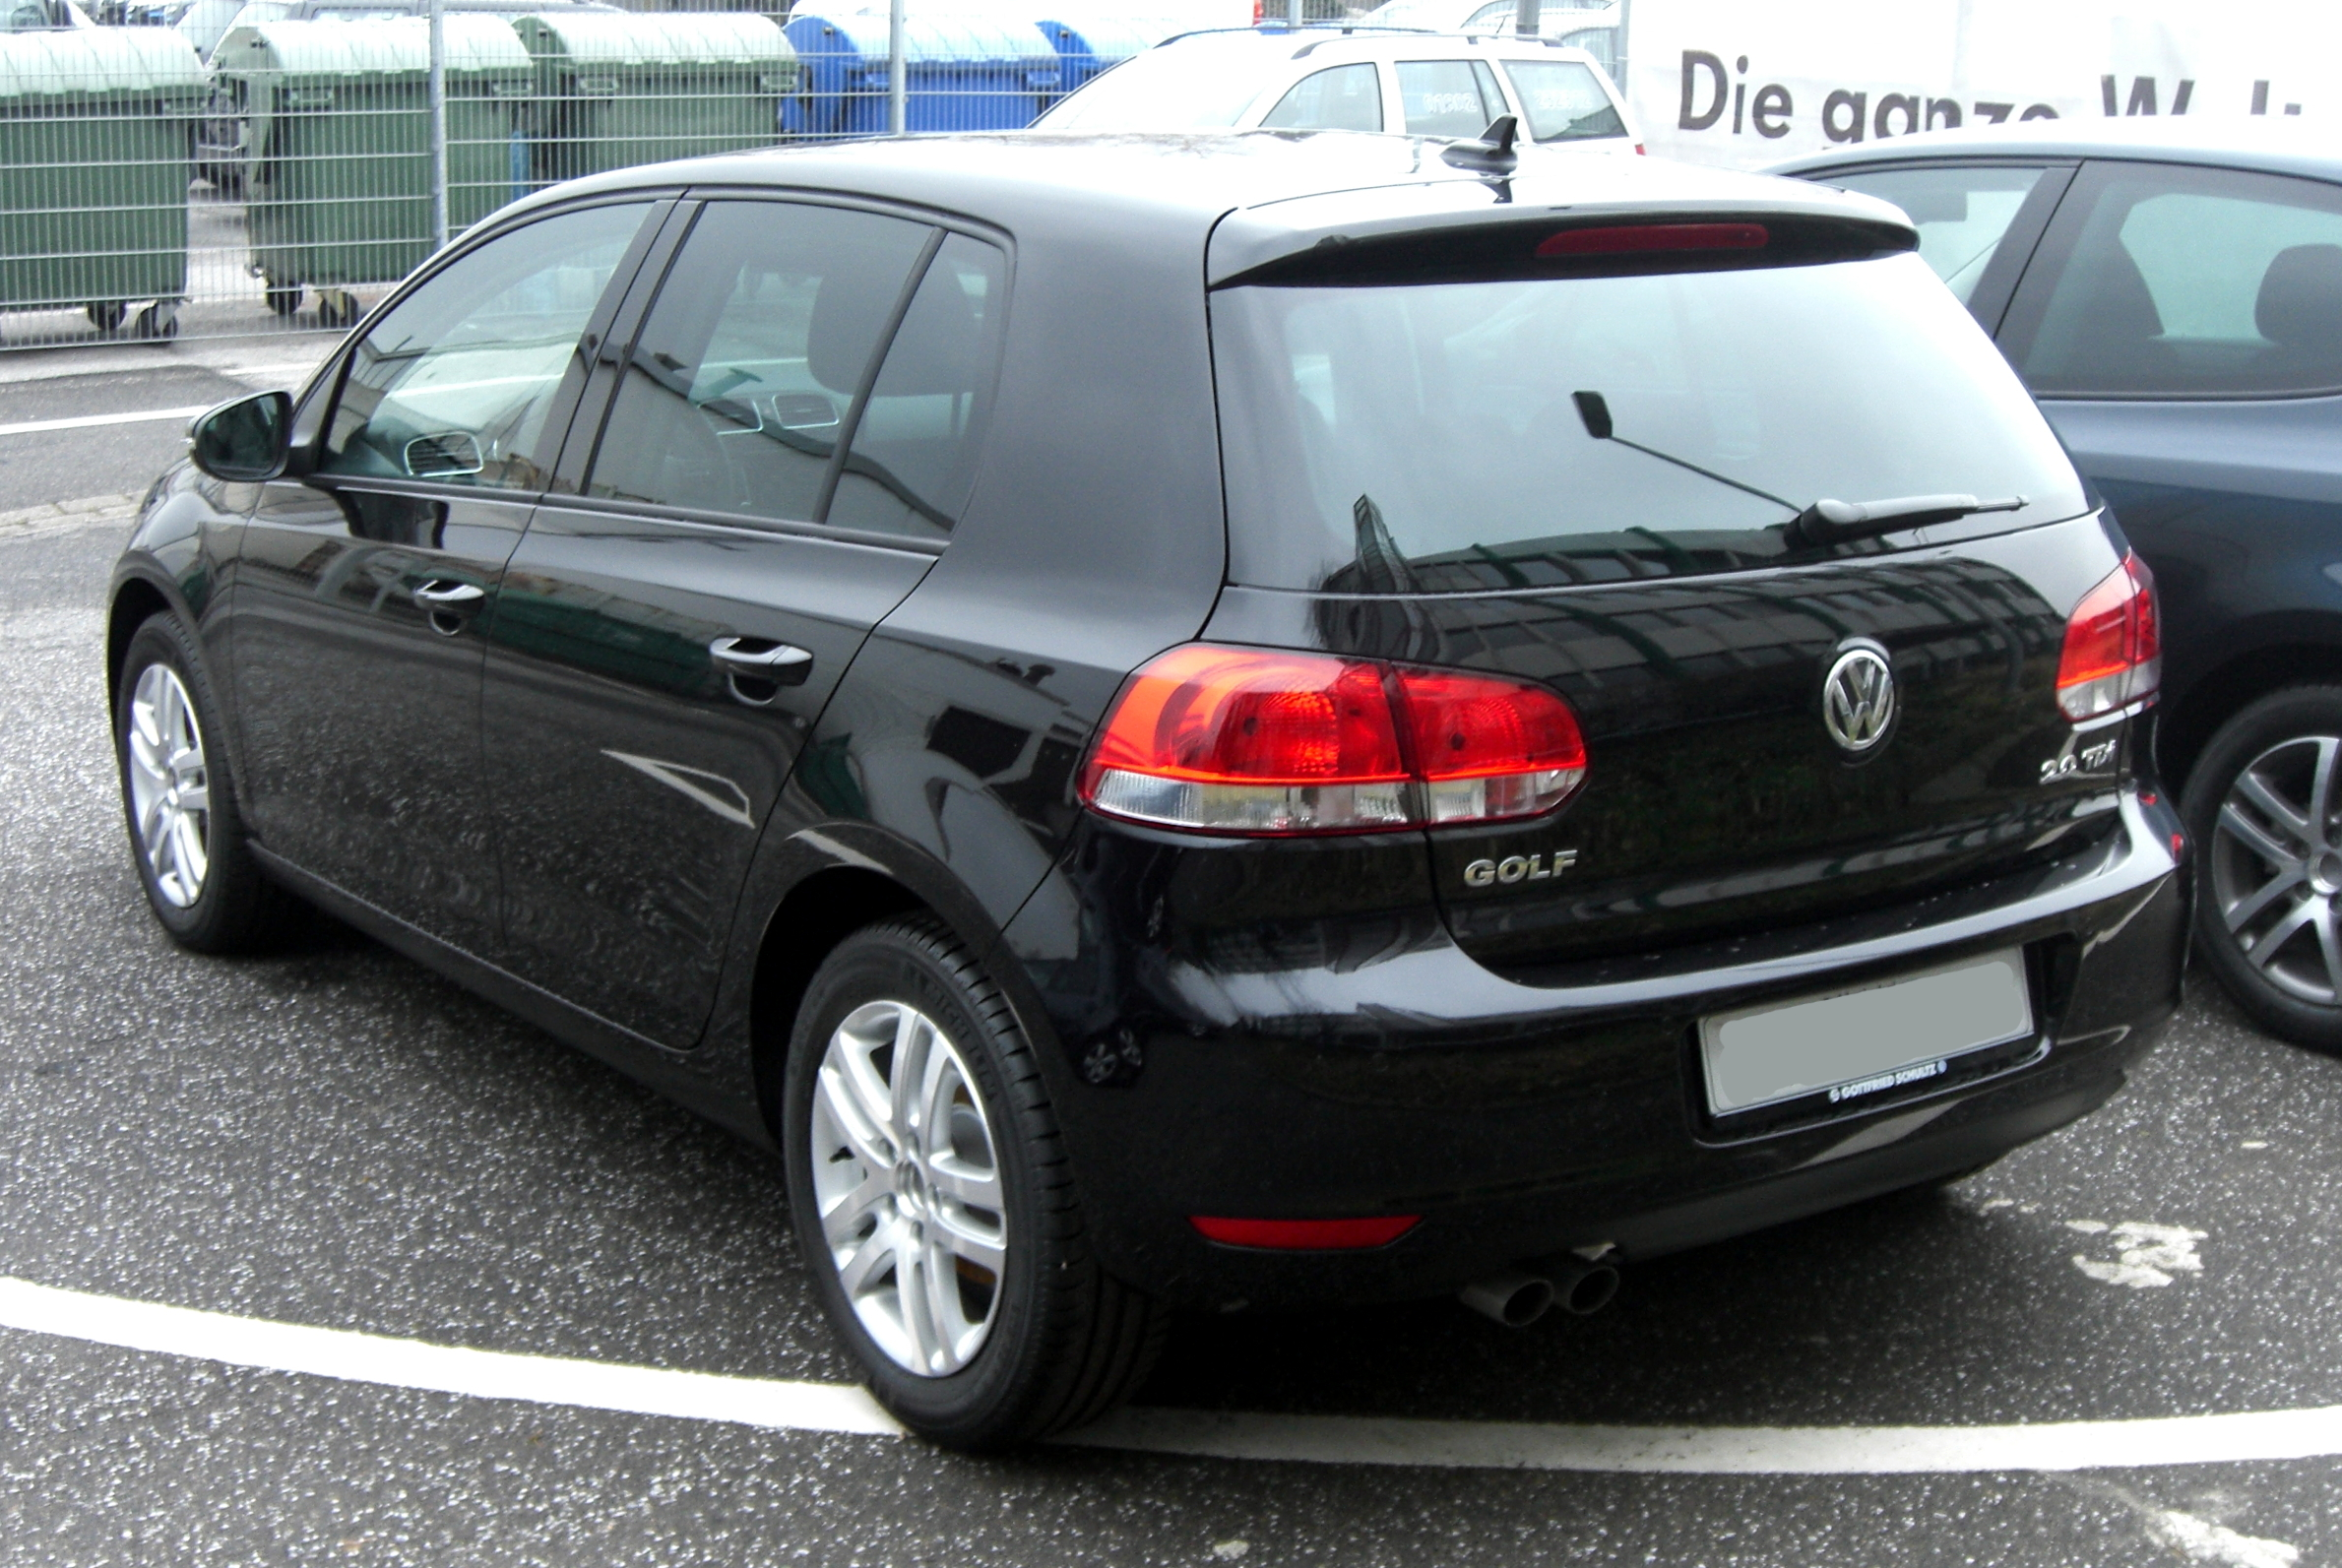 file vw golf vi rear jpg wikimedia commons. Black Bedroom Furniture Sets. Home Design Ideas